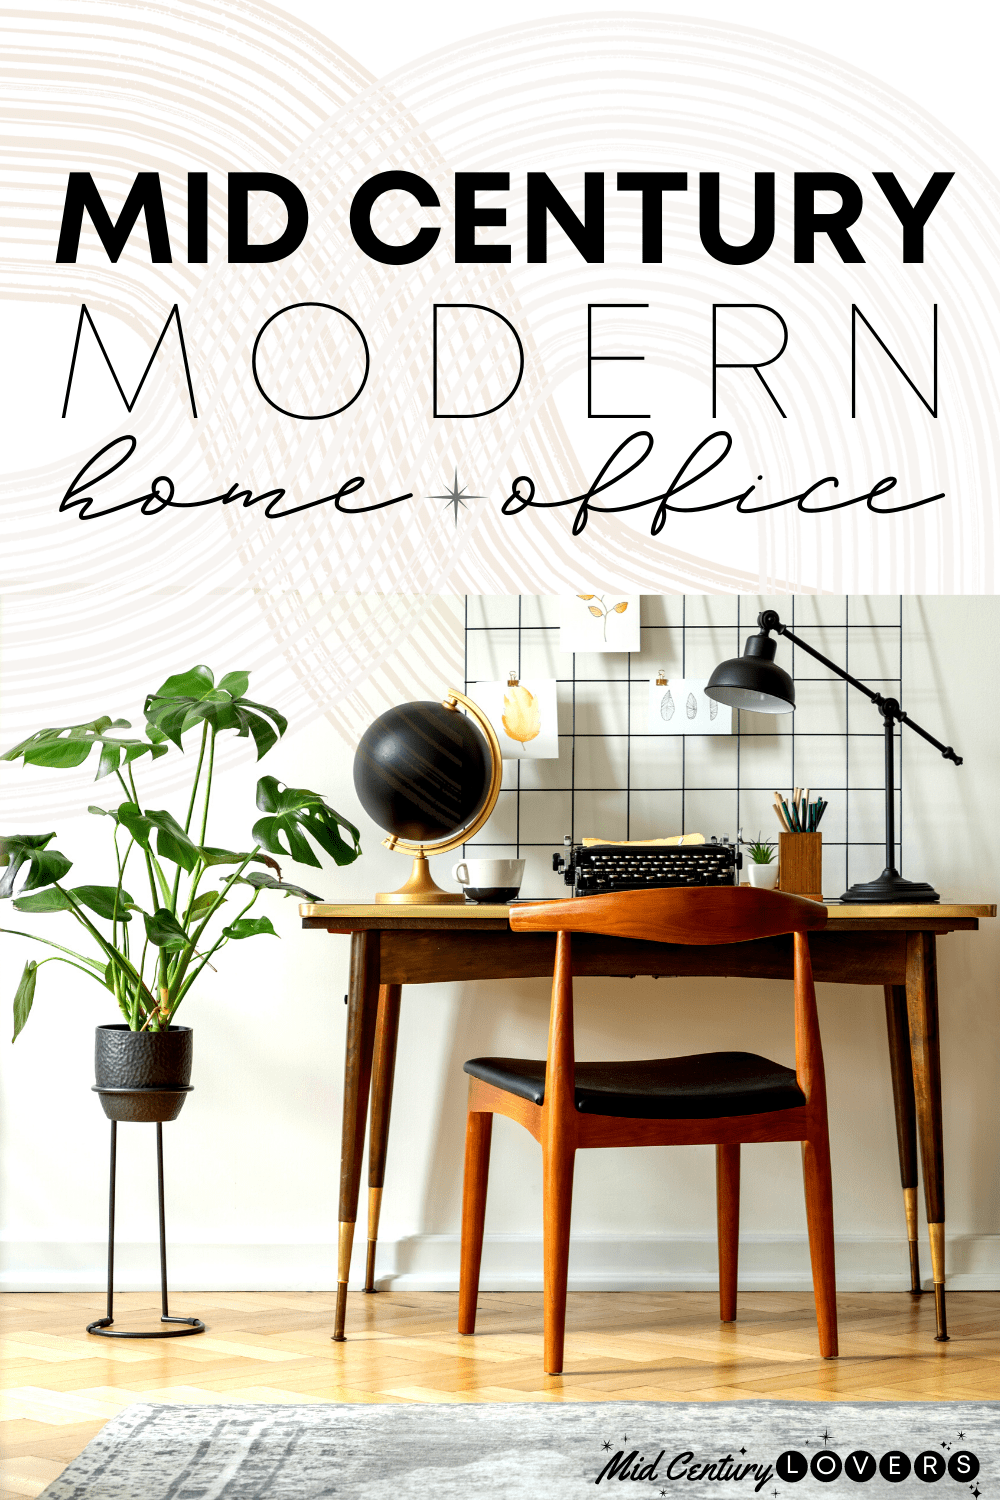 Design a fashion forward & functional Mid Century Modern Office with decor that suits your style. 20 must-see furniture pieces & accessories.